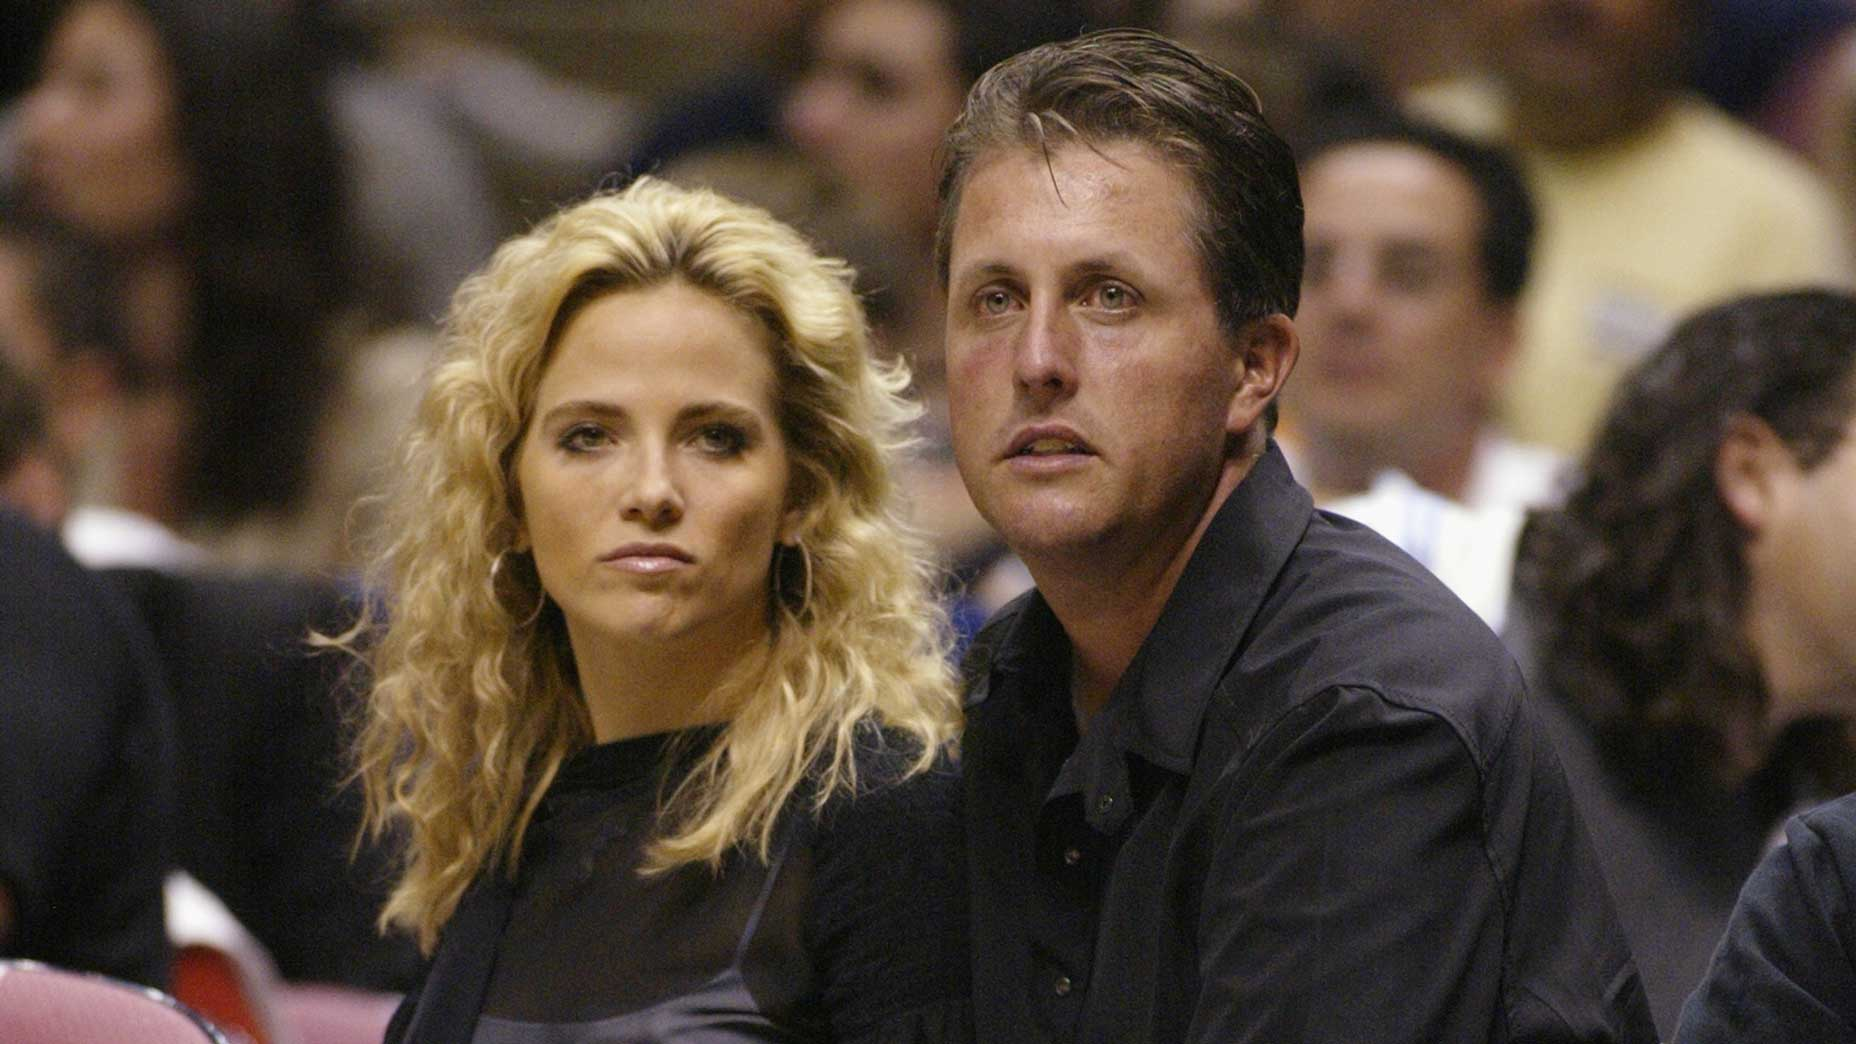 Amy and Phil Mickelson at Continental Airlines Arena in East Rutherford, N.J., during the 2002 NBA Finals.